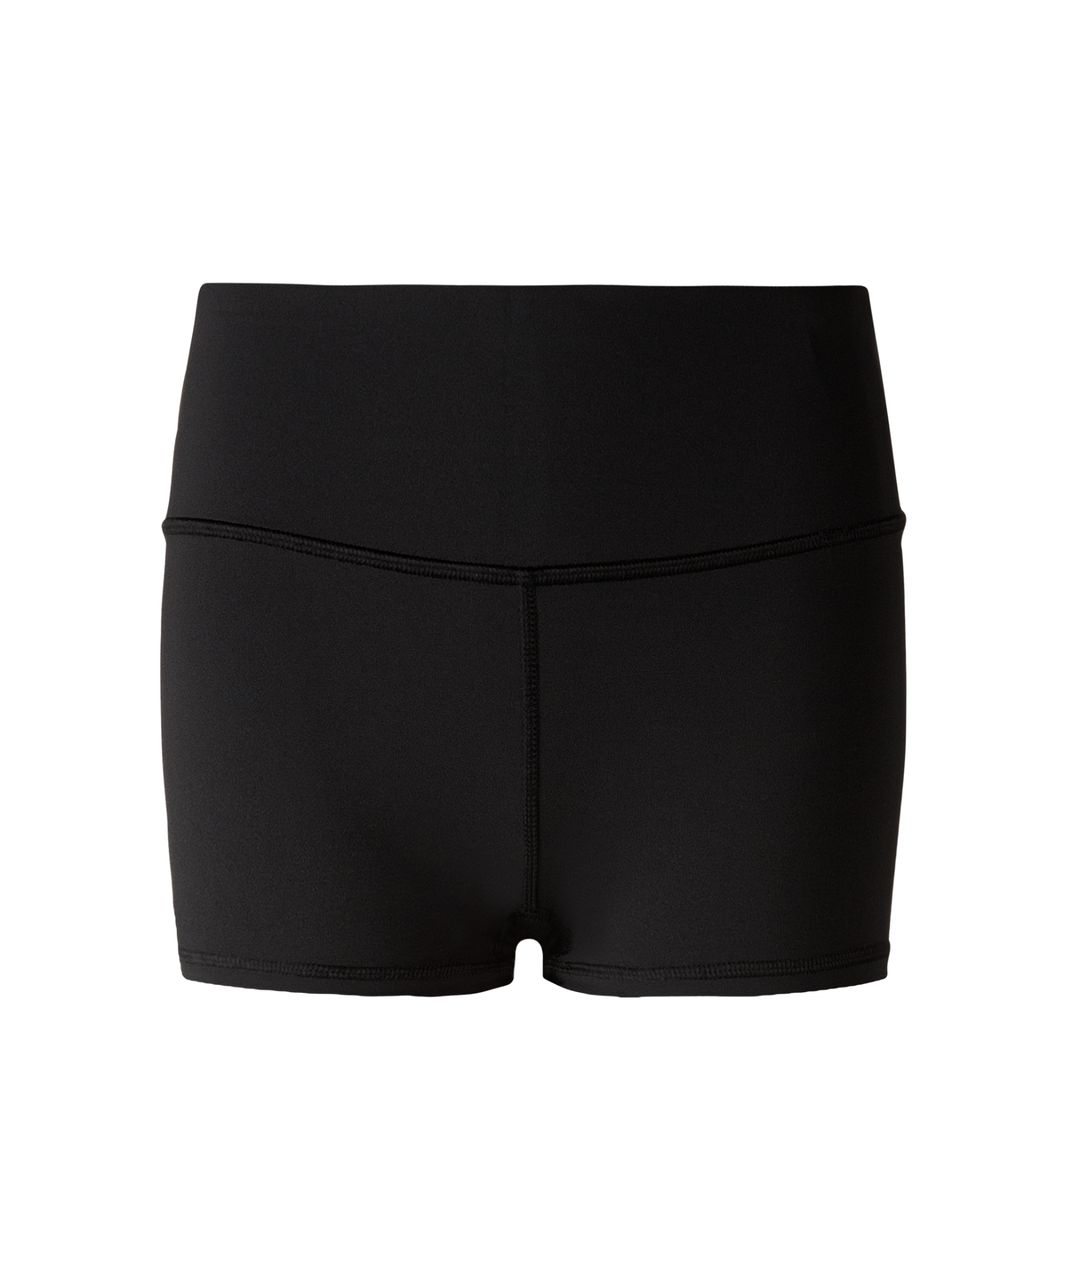 Lululemon Boogie Short - Black